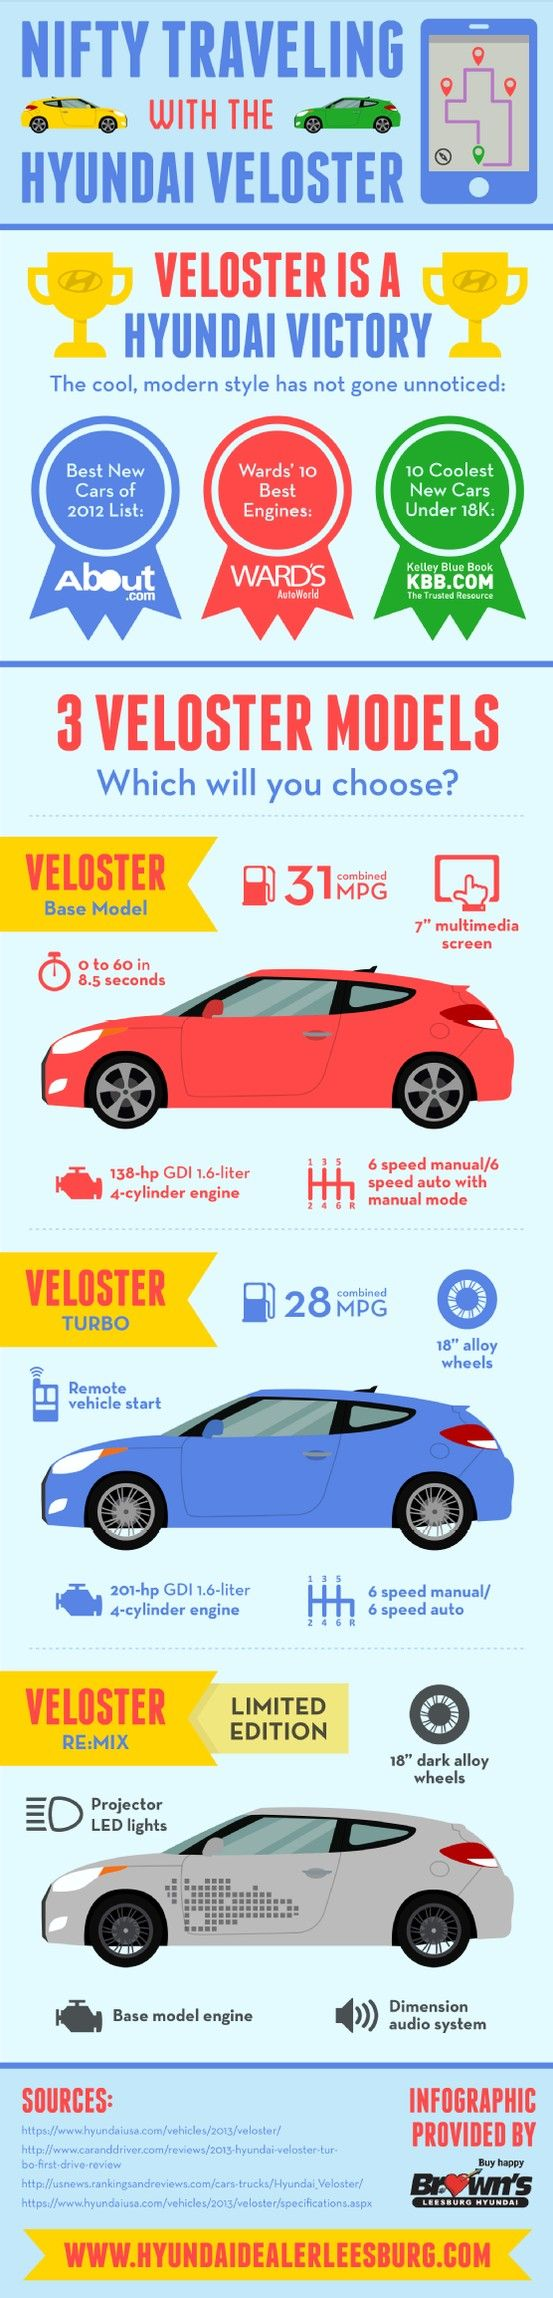 Ny honda dealer new york new amp used car newspaper ad riverhead - This Is Just One Of The Impressive Features Found In This Amazing Vehicle Learn About Other Features On This Infographic From A Hyundai Dealership